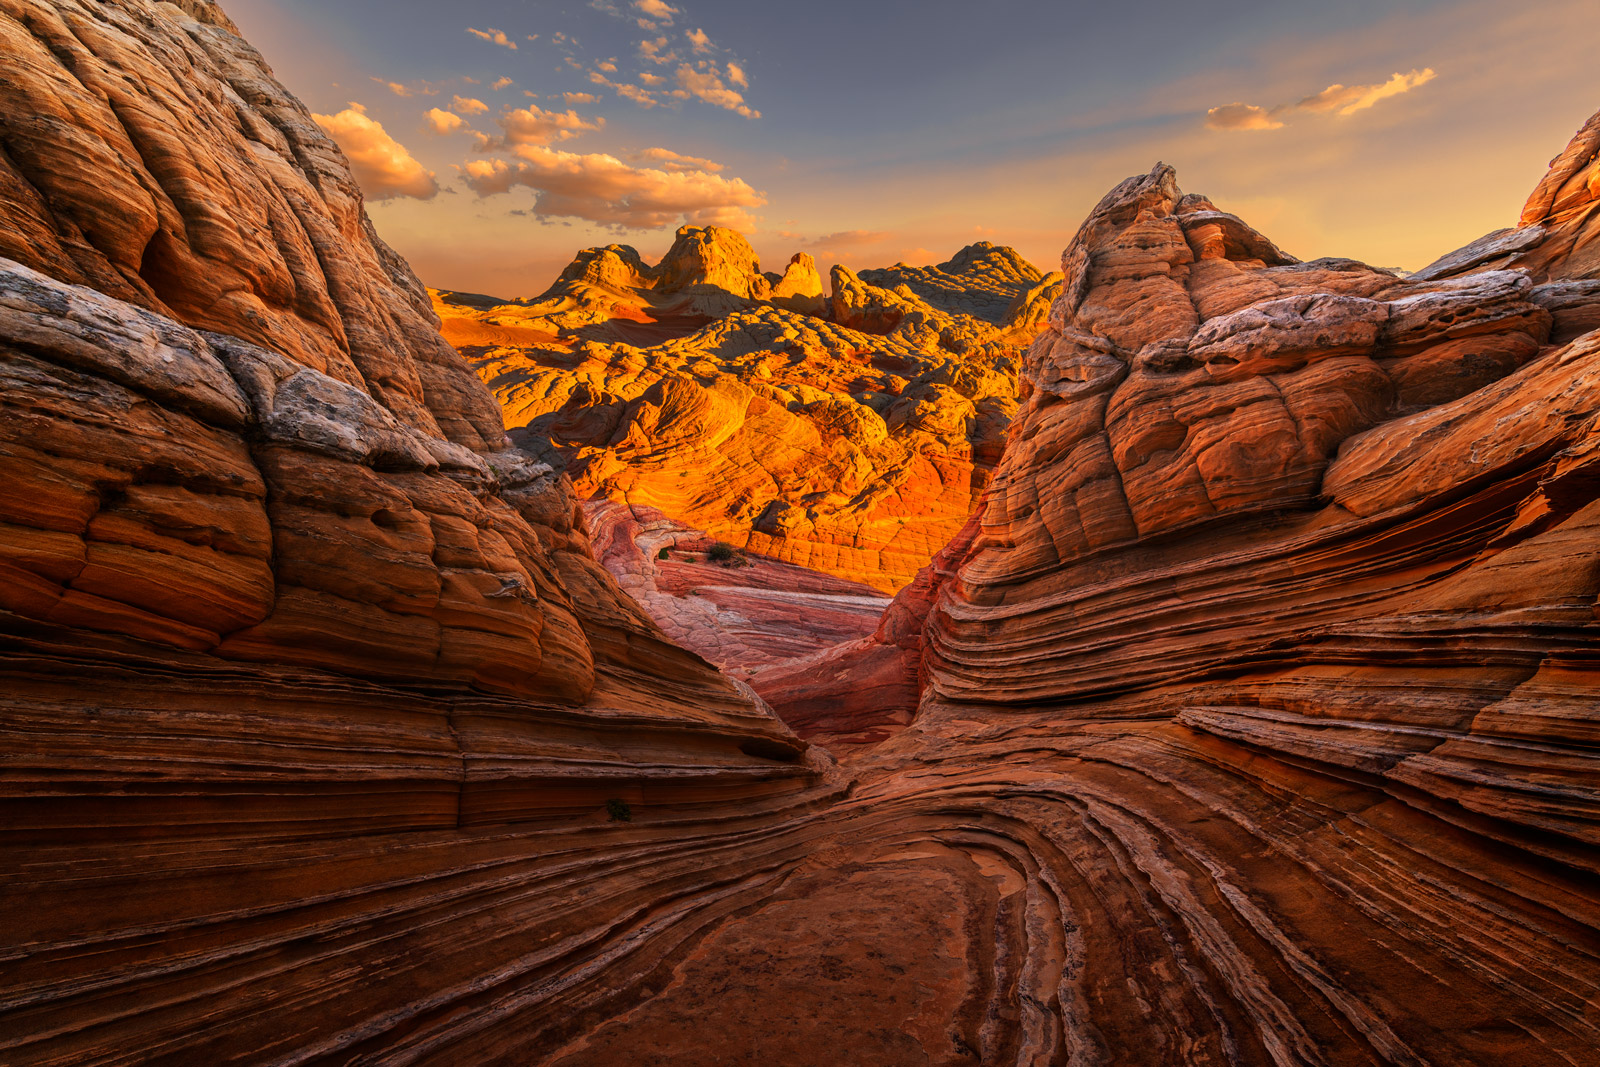 Arizona, White Pocket, Red Rock, Formation, limited edition, photograph, photo